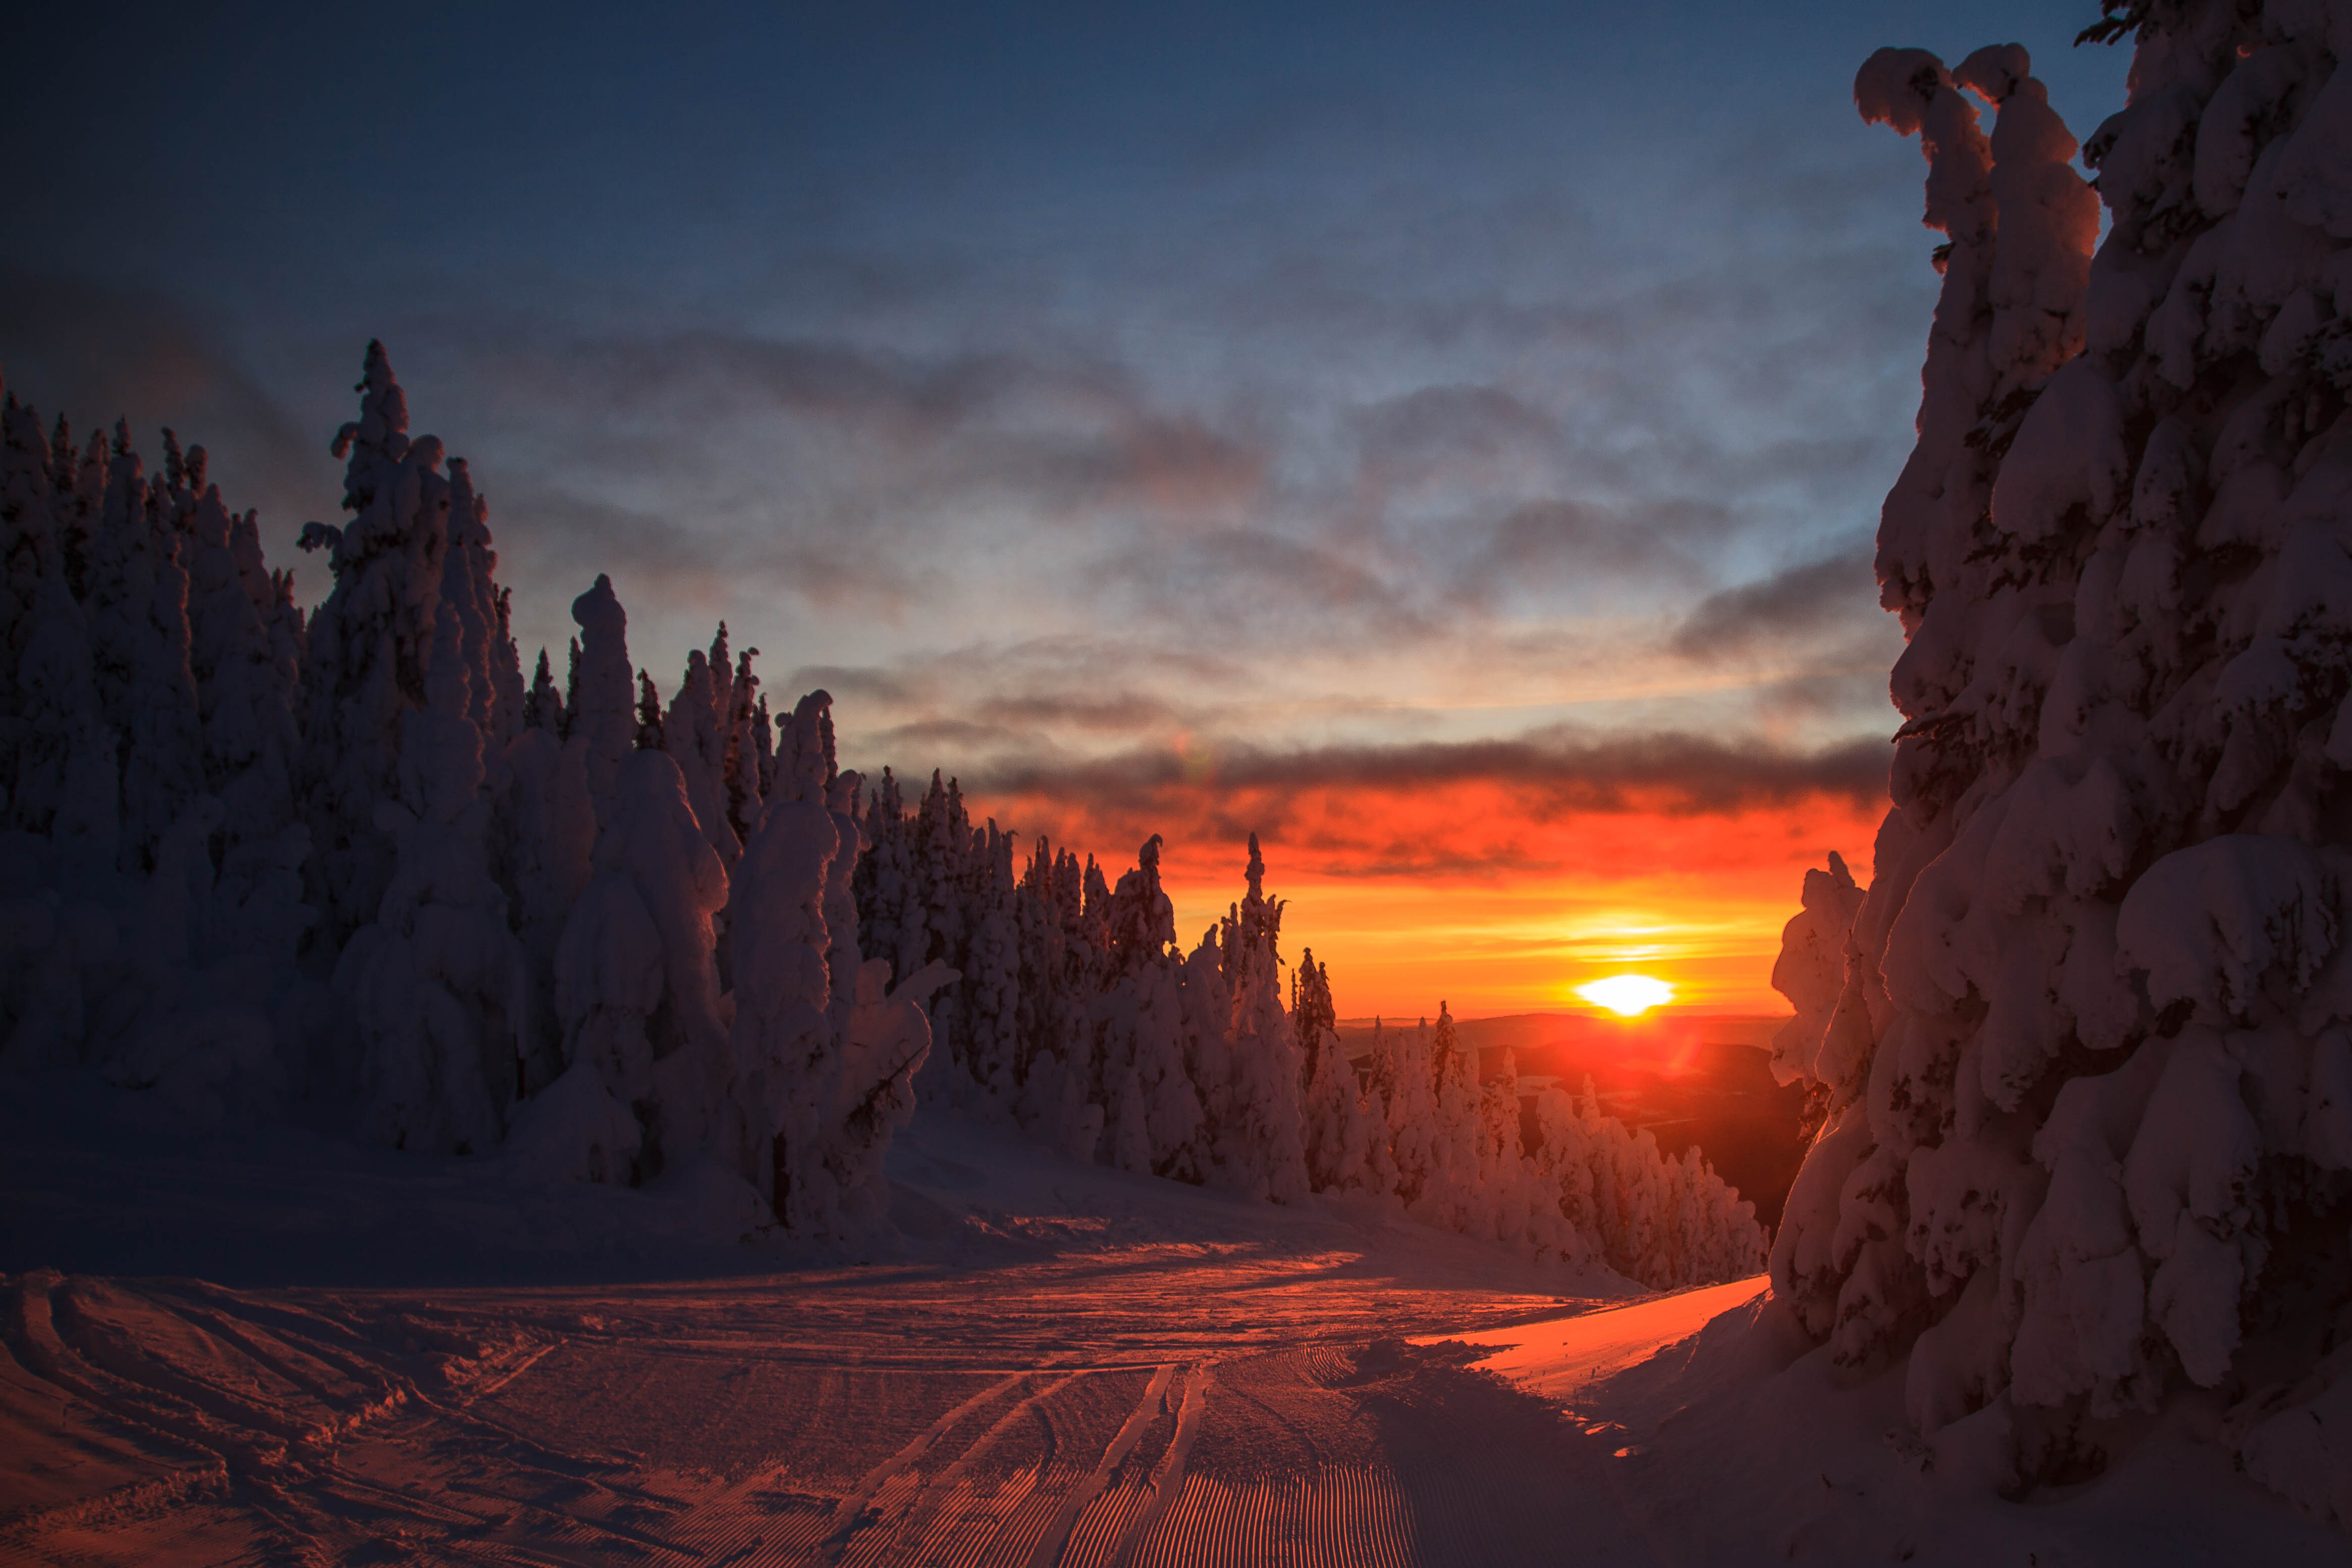 153202 download wallpaper Nature, Forest, Sunset, Winter, Slope, Snow Covered, Snowbound, Landscape screensavers and pictures for free